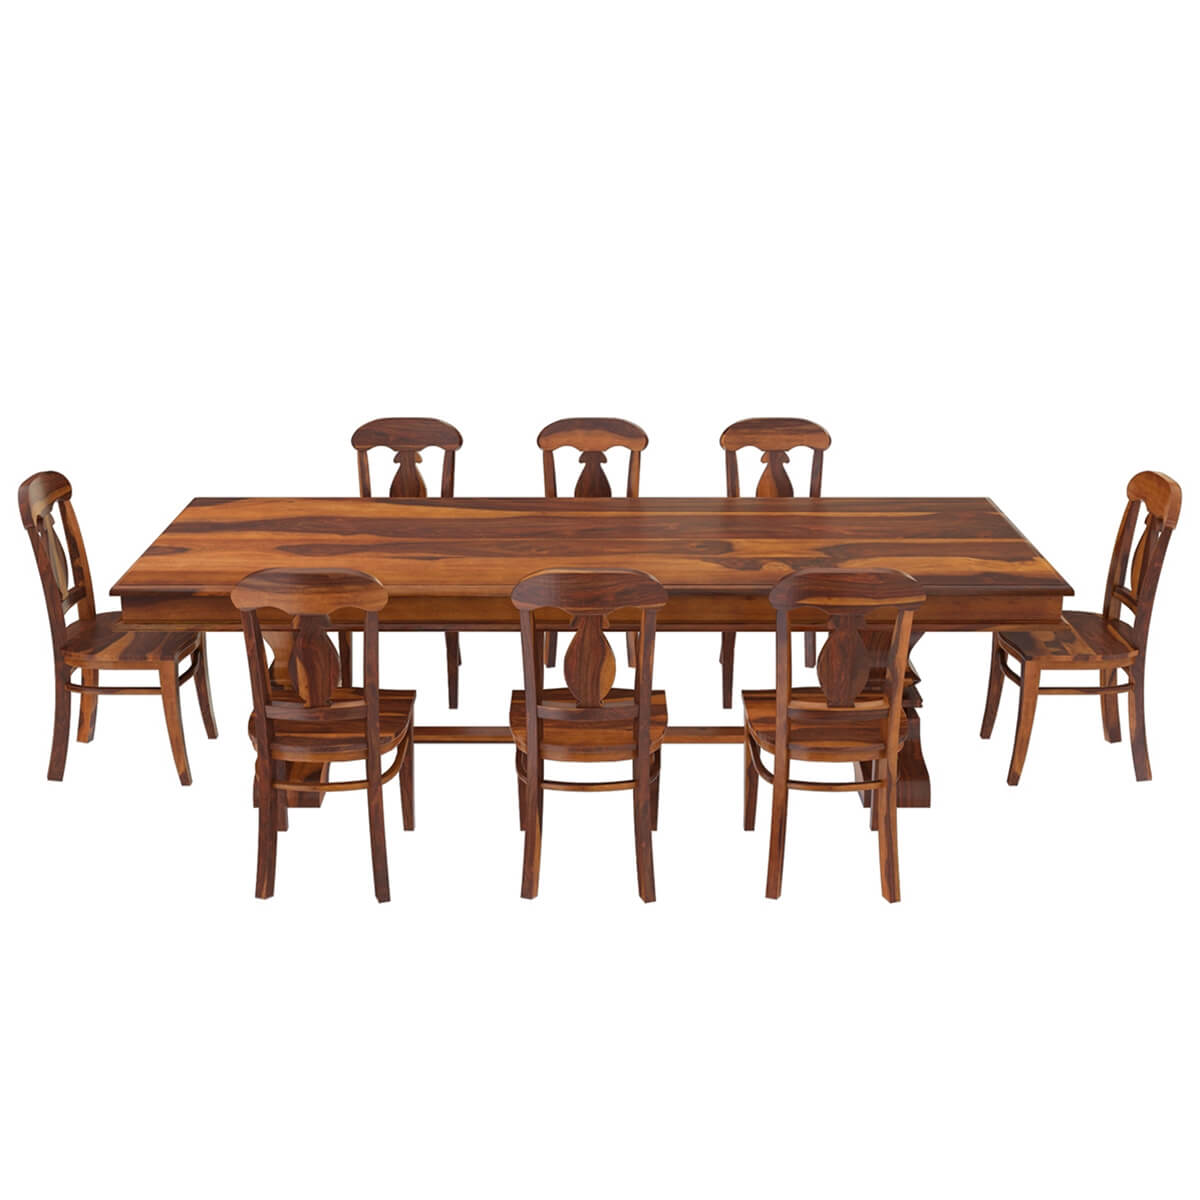 Nottingham Solid Wood 92 Trestle Dining Table Benches amp 2  : 73942 from www.sierralivingconcepts.com size 1200 x 1200 jpeg 94kB